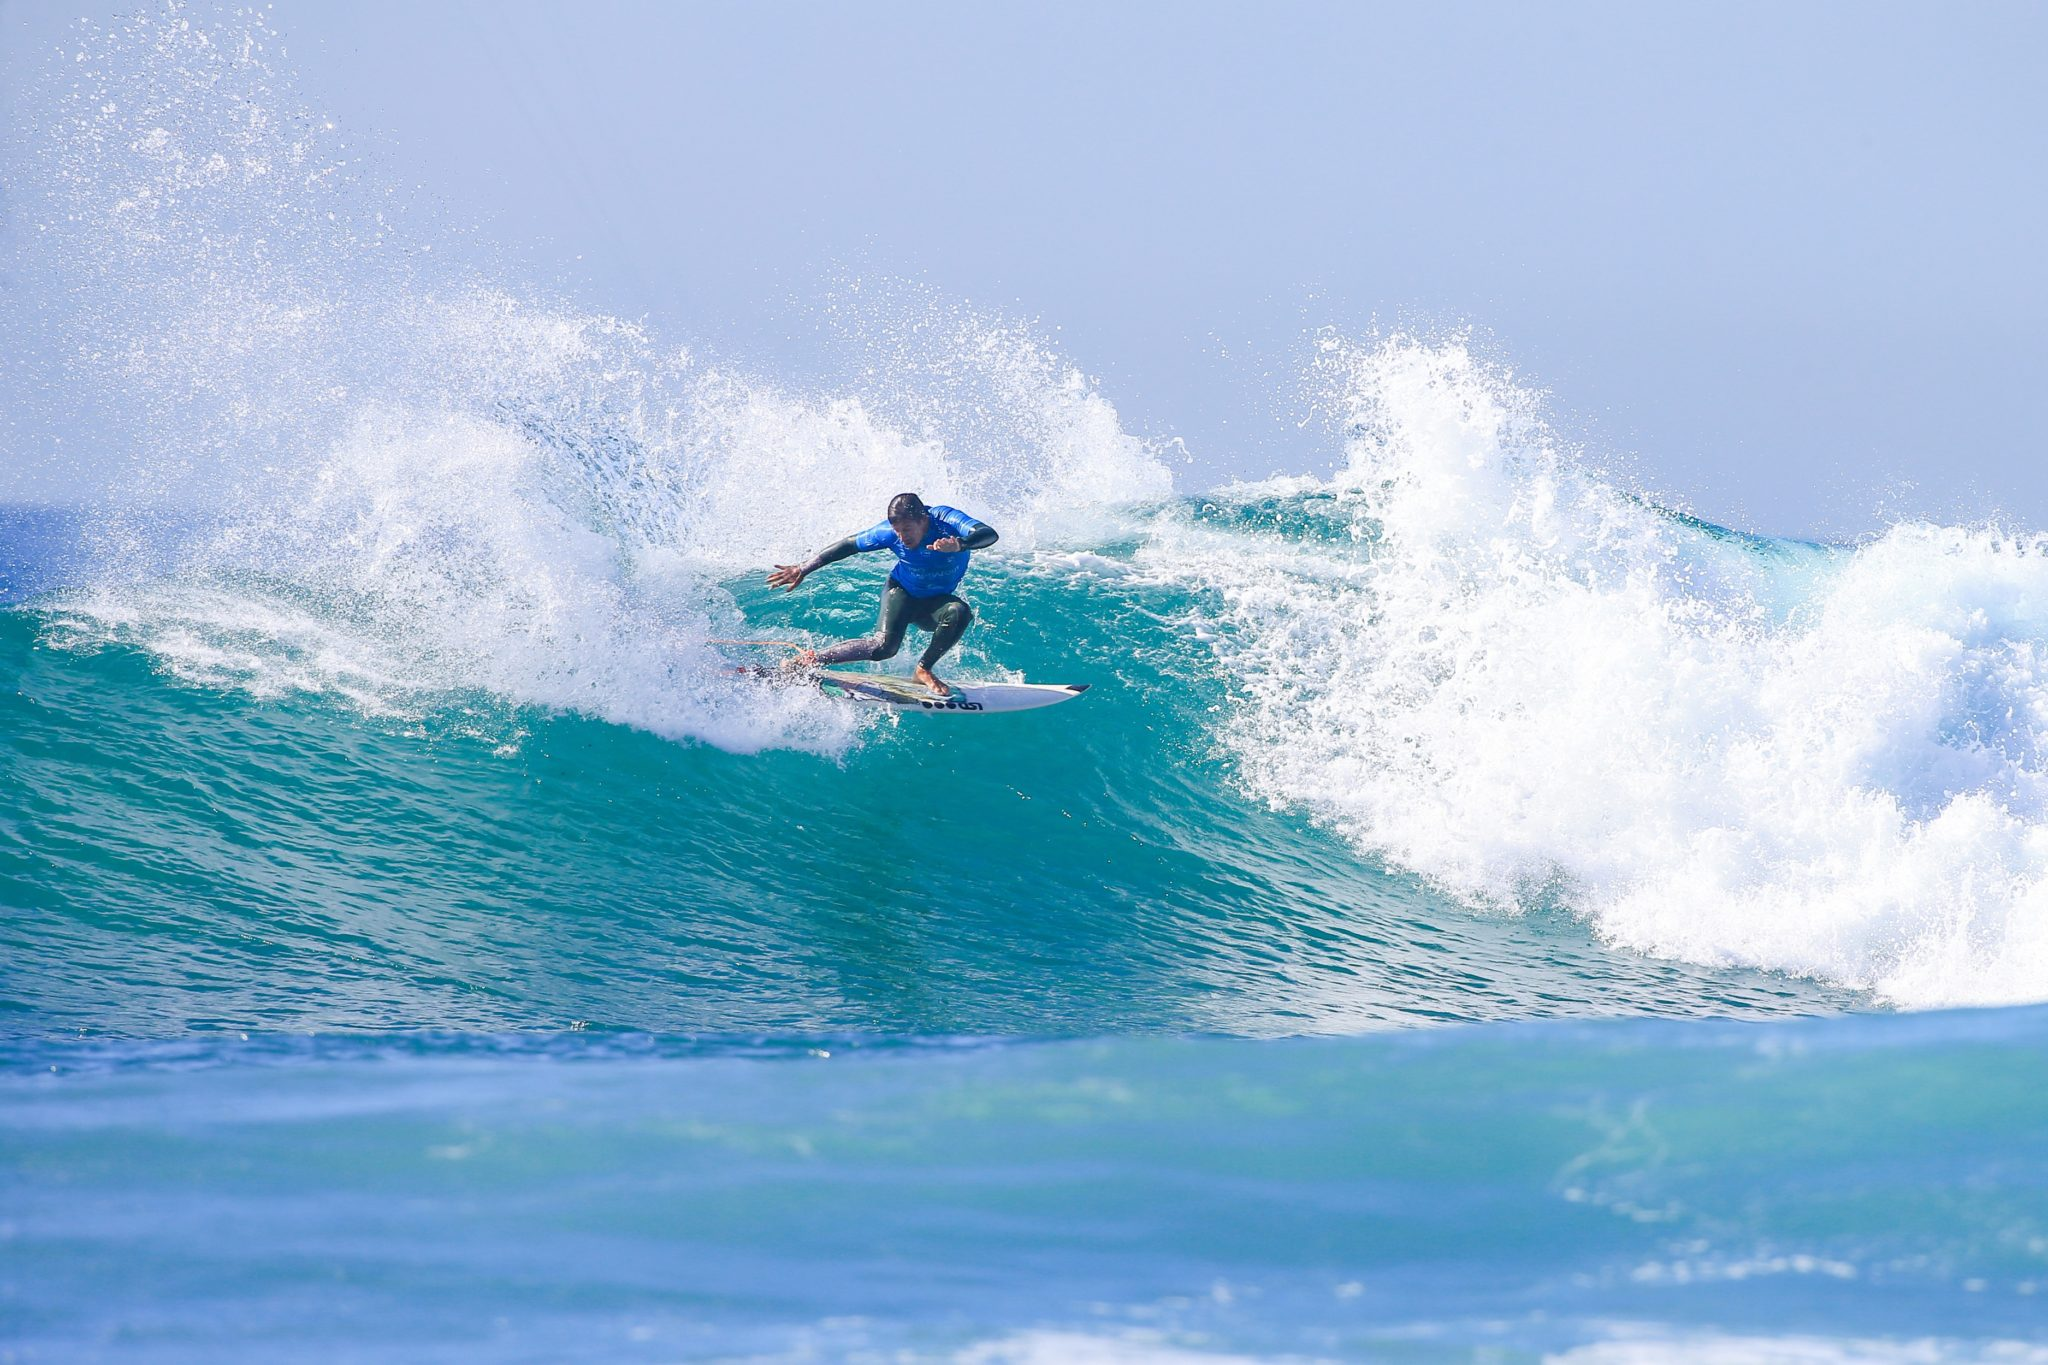 Thiago Camarão-SP (Laurent Masurel / WSL via Getty Images)